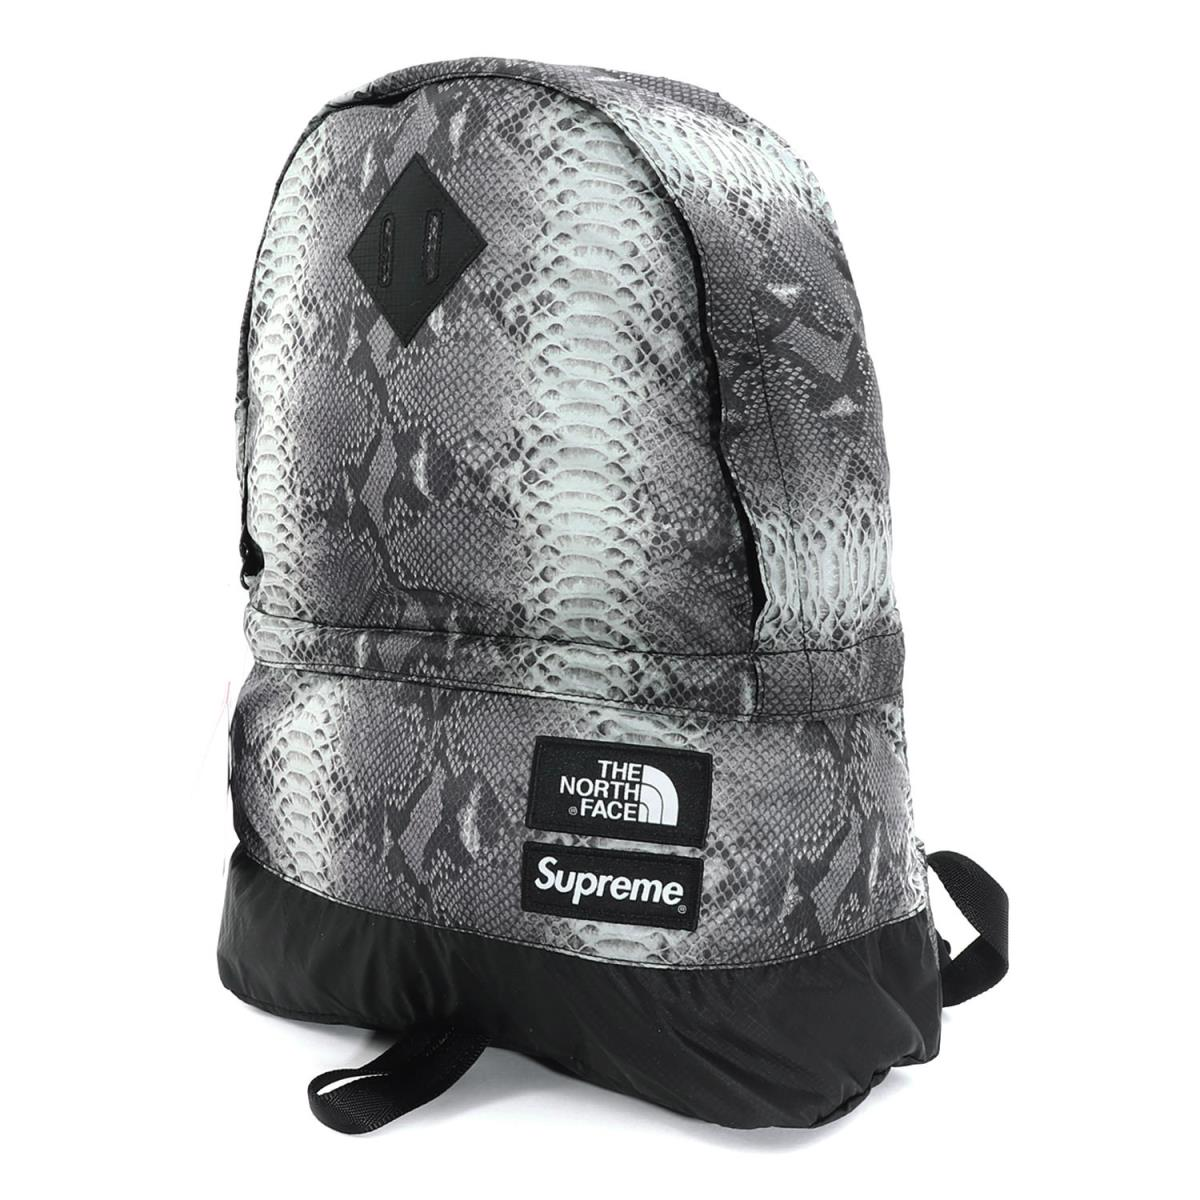 084058494 BEEGLE by Boo-Bee: Supreme (シュプリーム) 18S/S X THE NORTH FACE ...